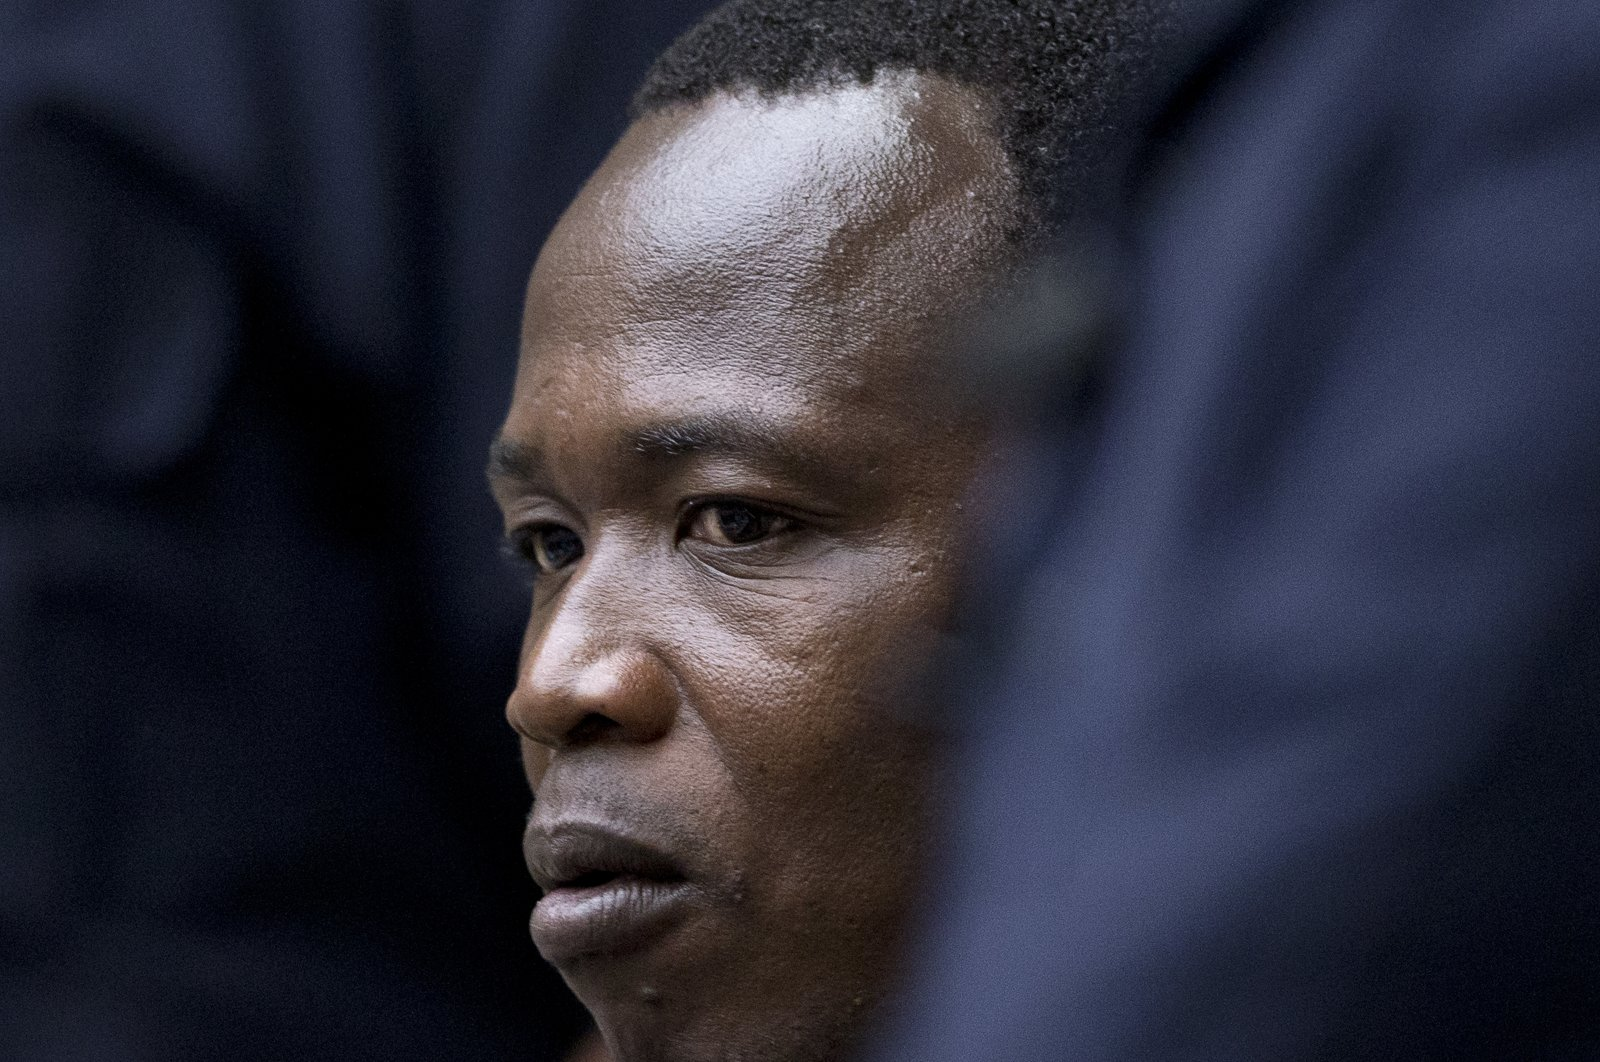 Dominic Ongwen, a senior commander in the Lord's Resistance Army, whose fugitive leader Kony is one of the world's most-wanted war crimes suspects, is flanked by two security guards as he sits in the courtroom of the International Court in The Hague, Netherlands, Dec. 6, 2016. (AP Photo)